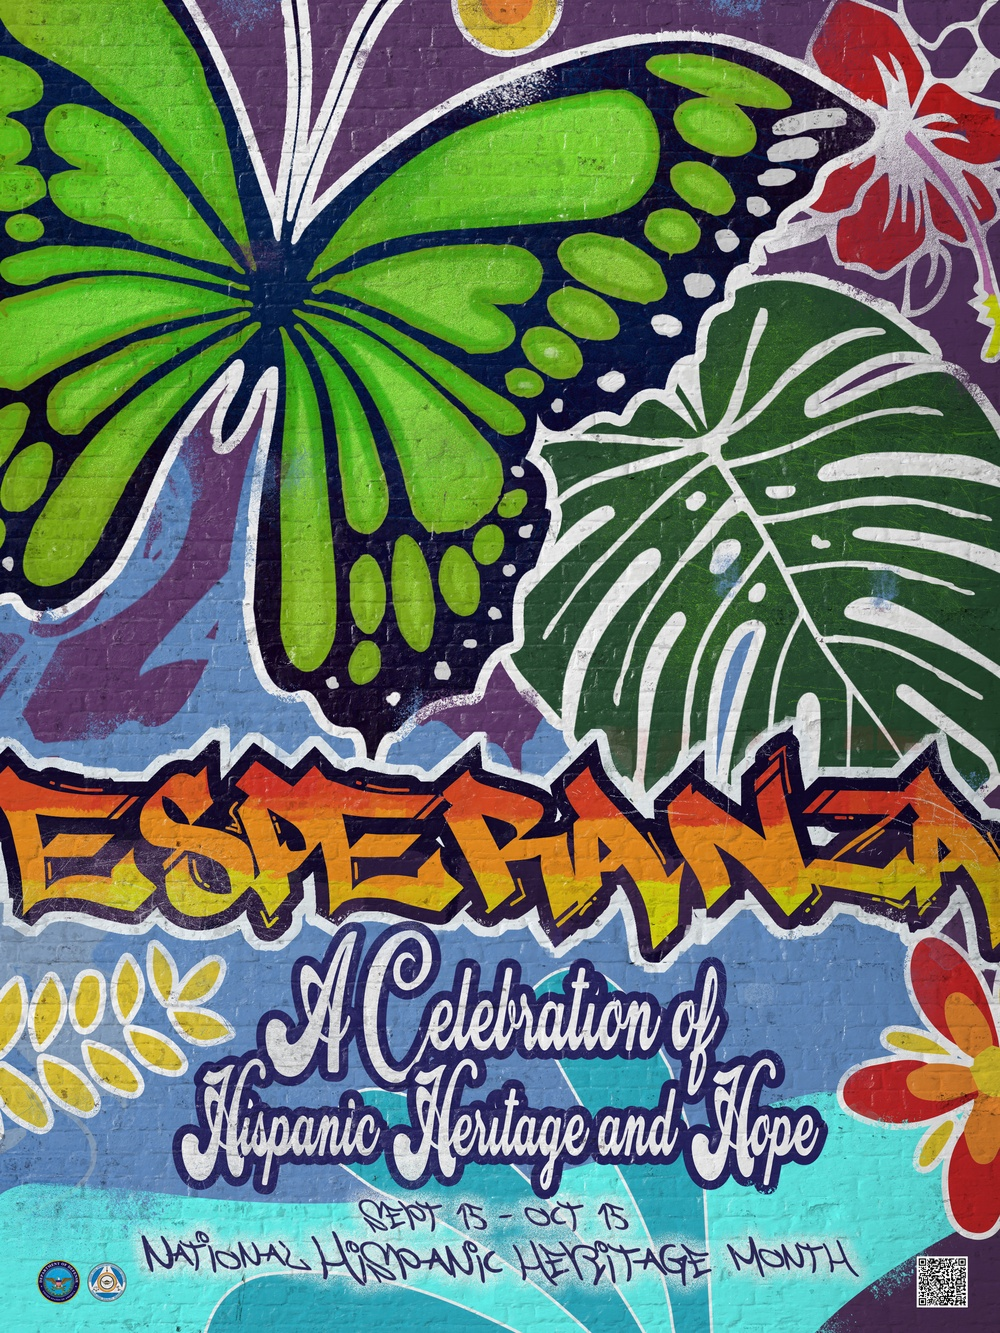 Hispanic Heritage Month: What it means to be Hispanic and serve